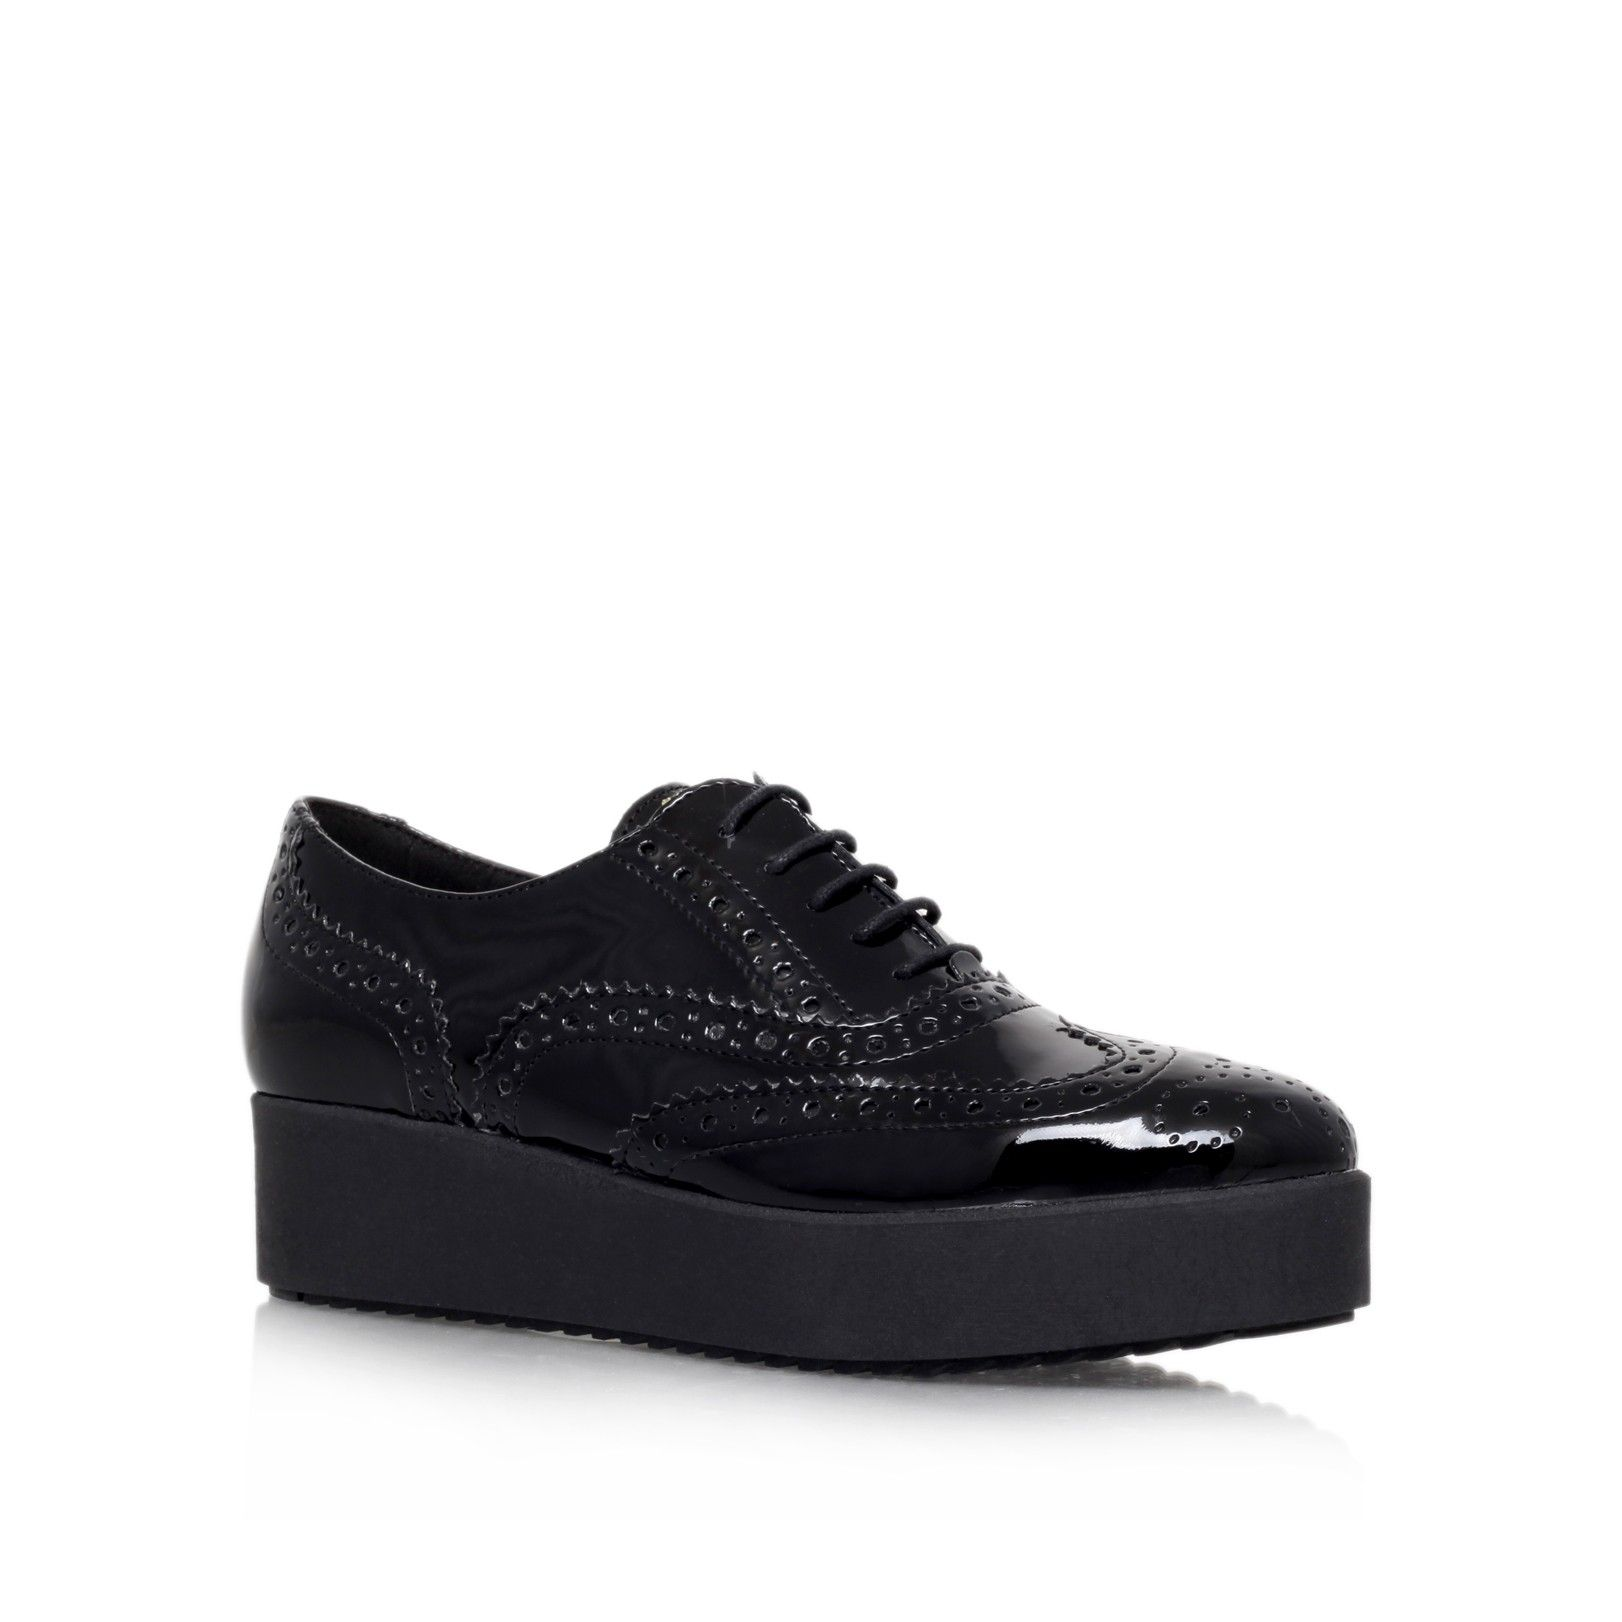 leslie black platform brogue shoes from Carvela Kurt Geiger | - MY ...